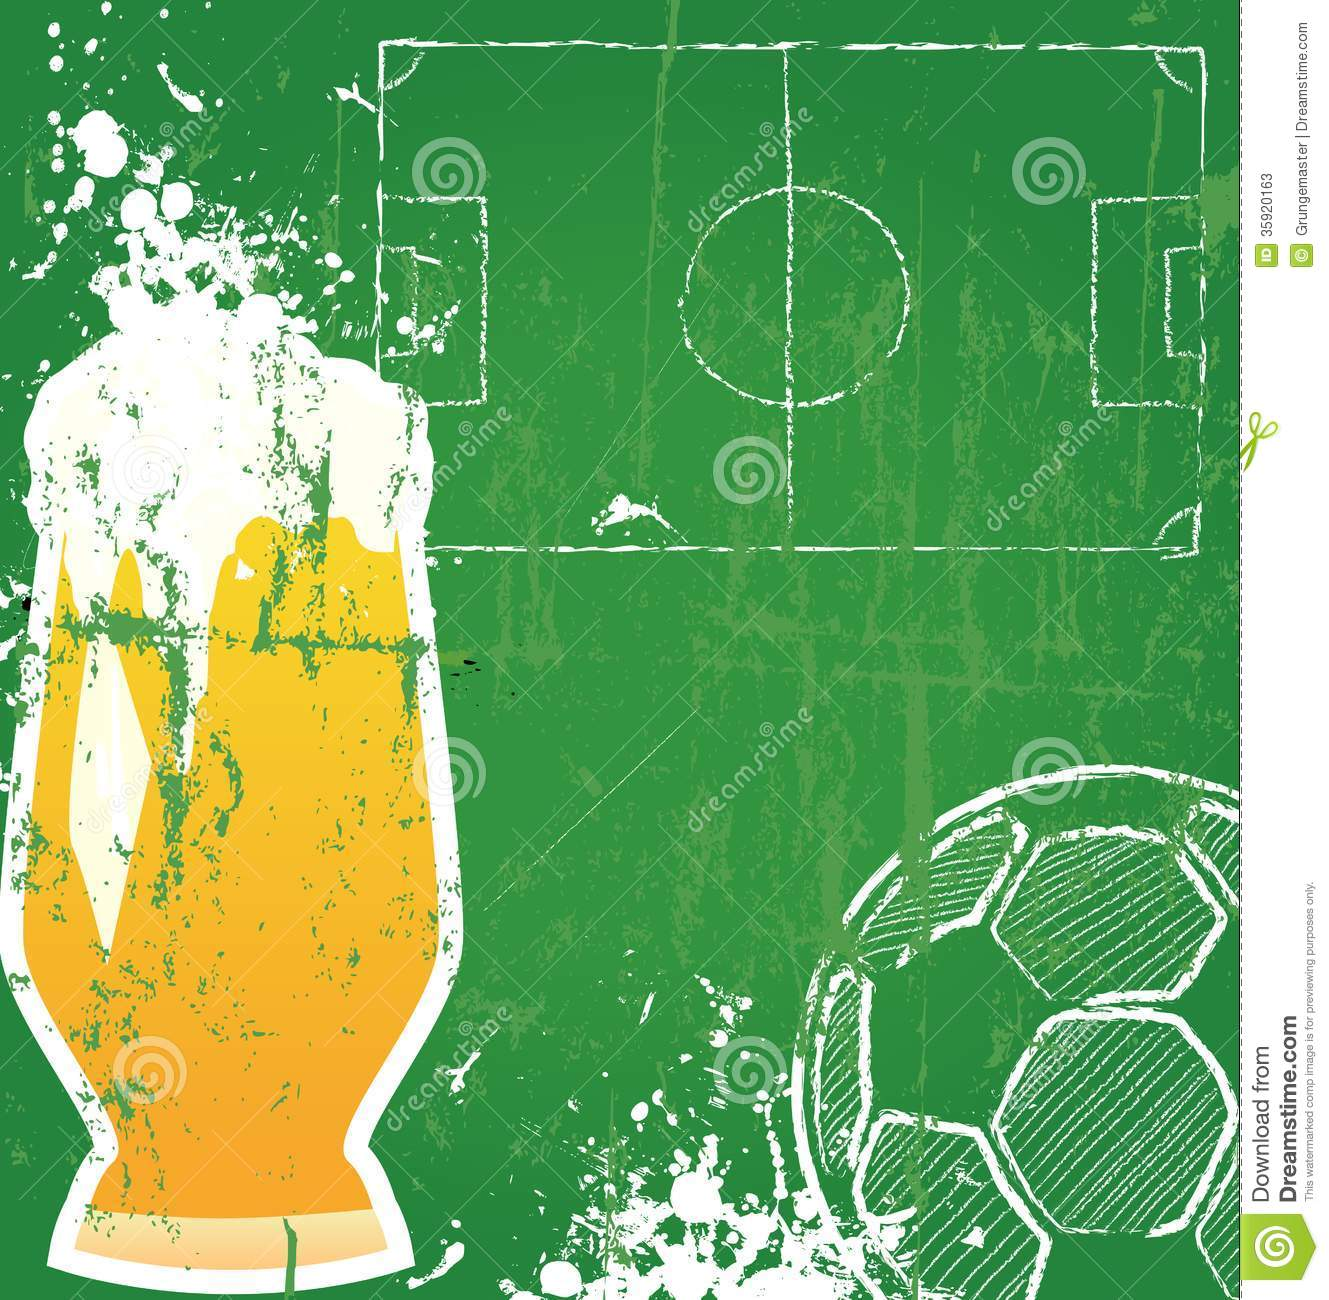 Soccer / Football and beer,free copy space, vector illustration.